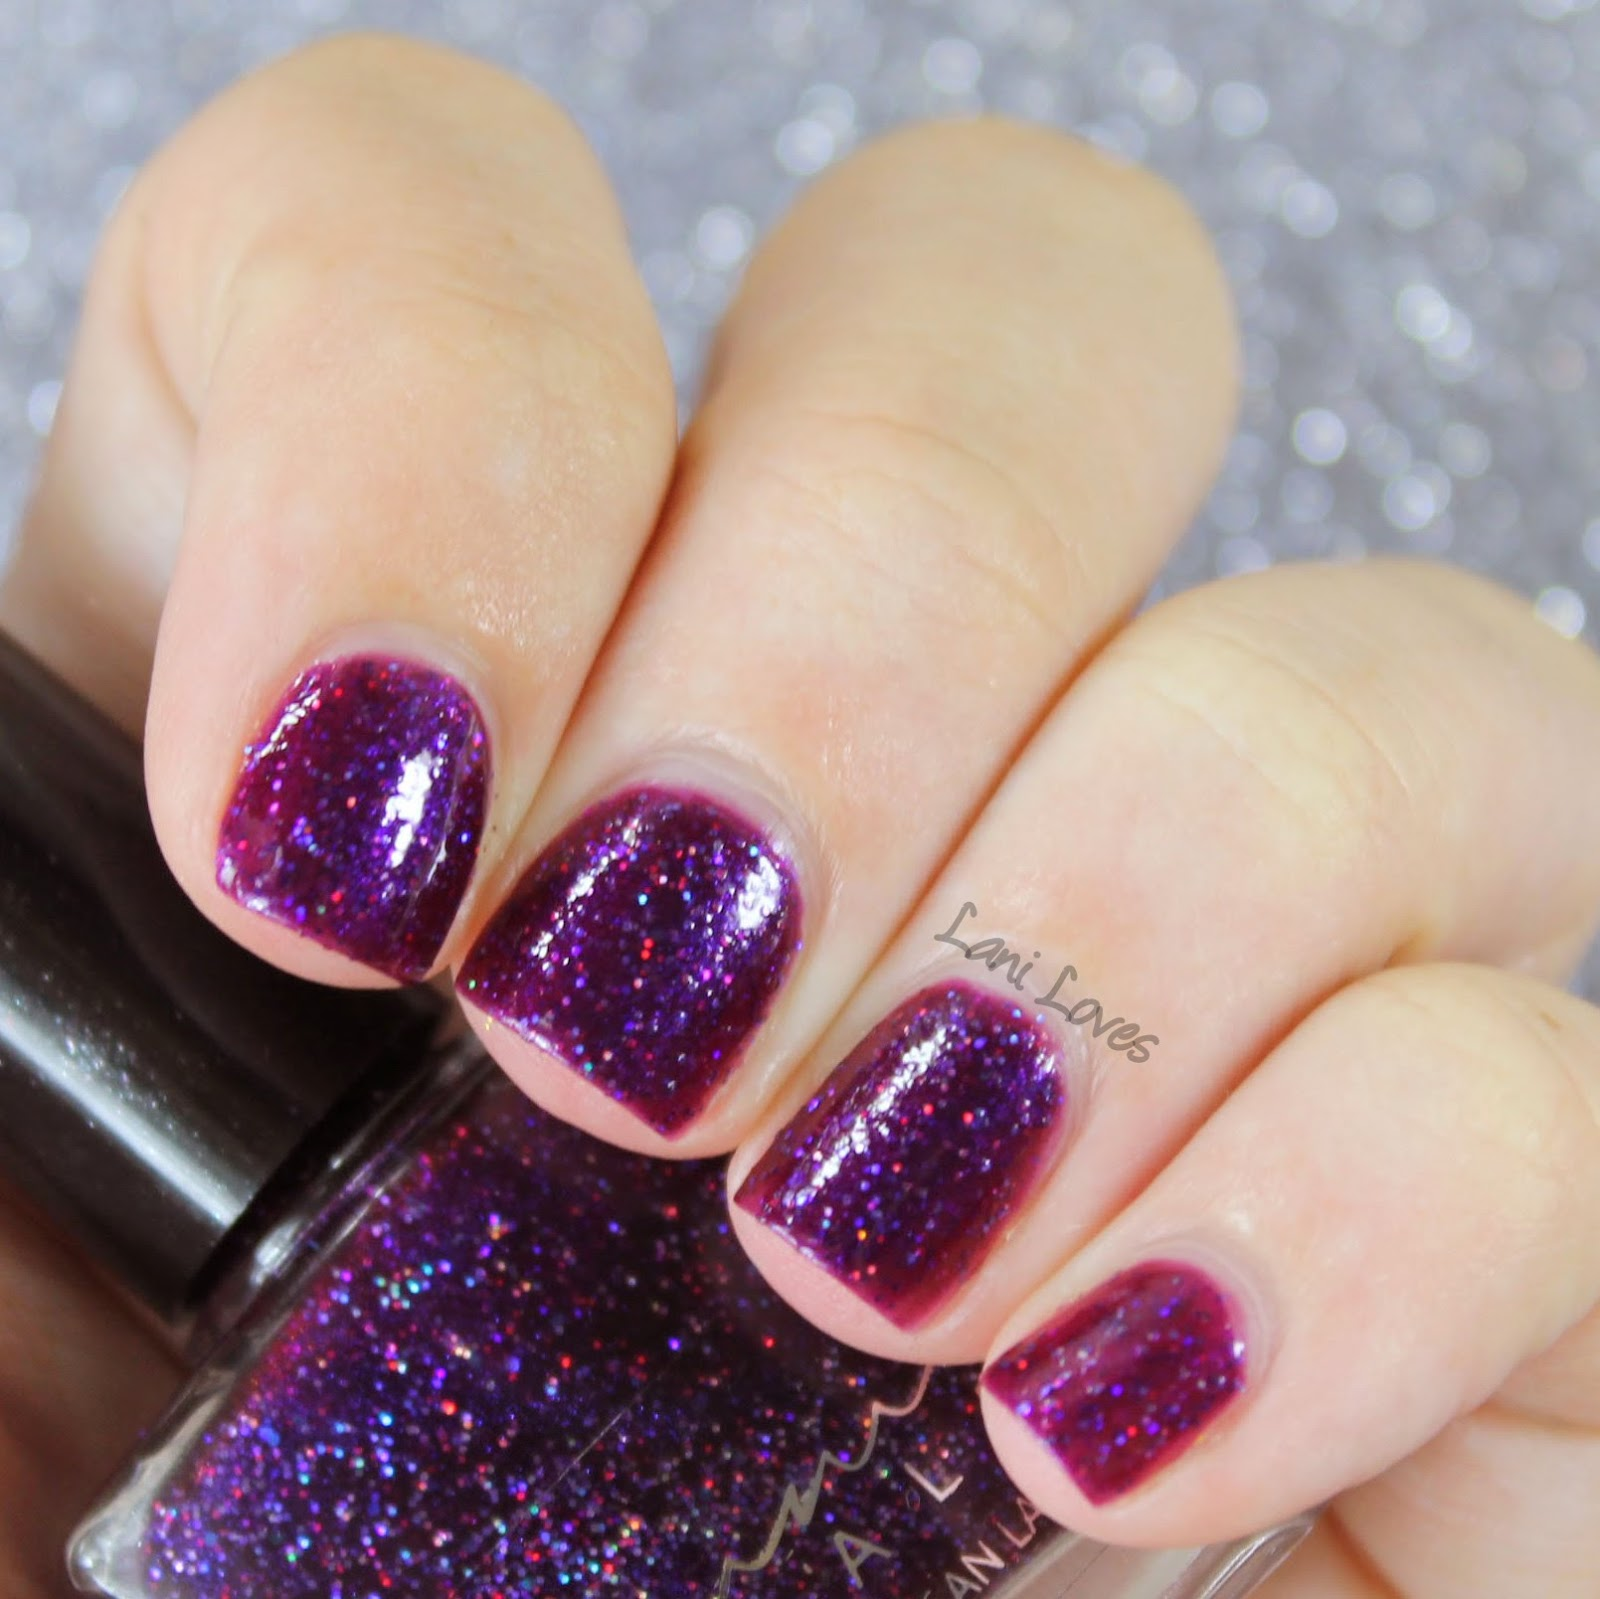 Femme Fatale Cosmetics - Star-Crossed Lovers nail polish swatch